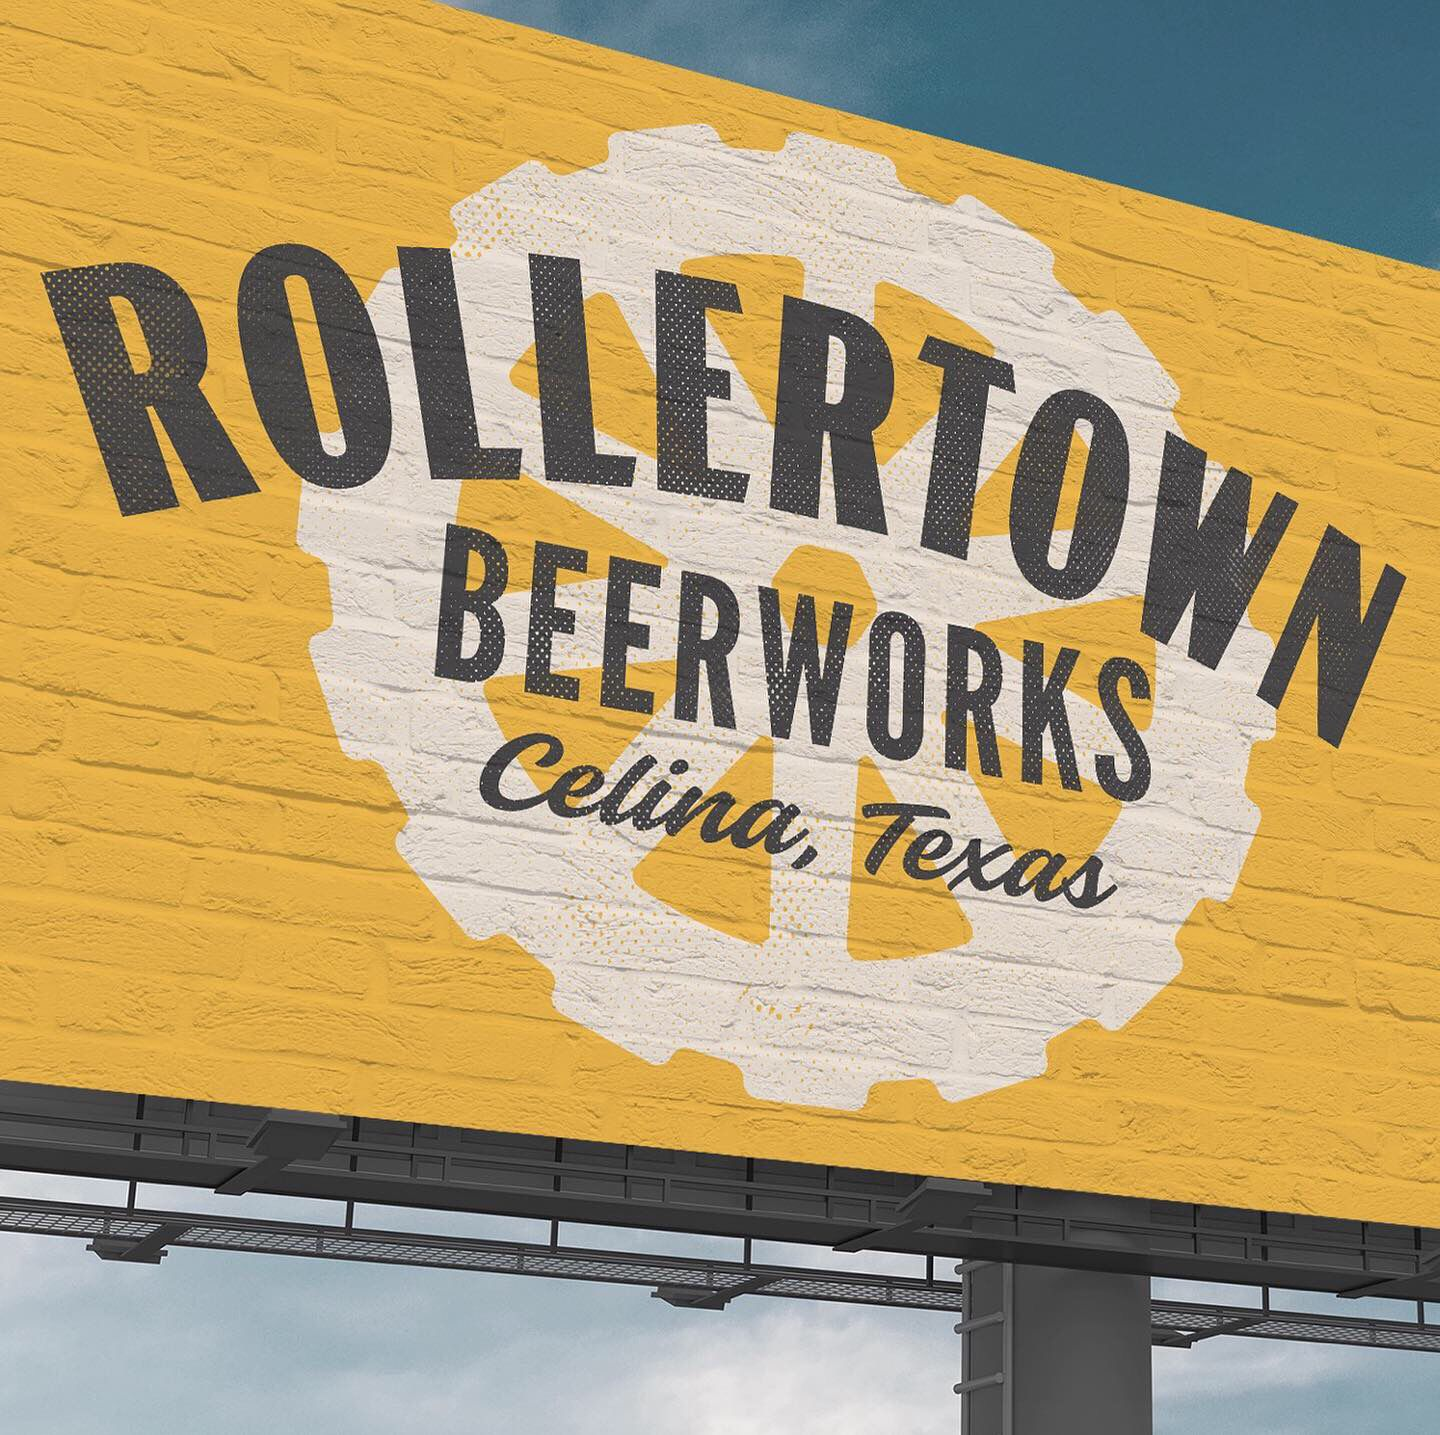 "Rollertown Beerworks will produce a variety of lagers, plus some ""crazy stuff"" and ""tons of collaborations,"" says brewer Tommy Miller."